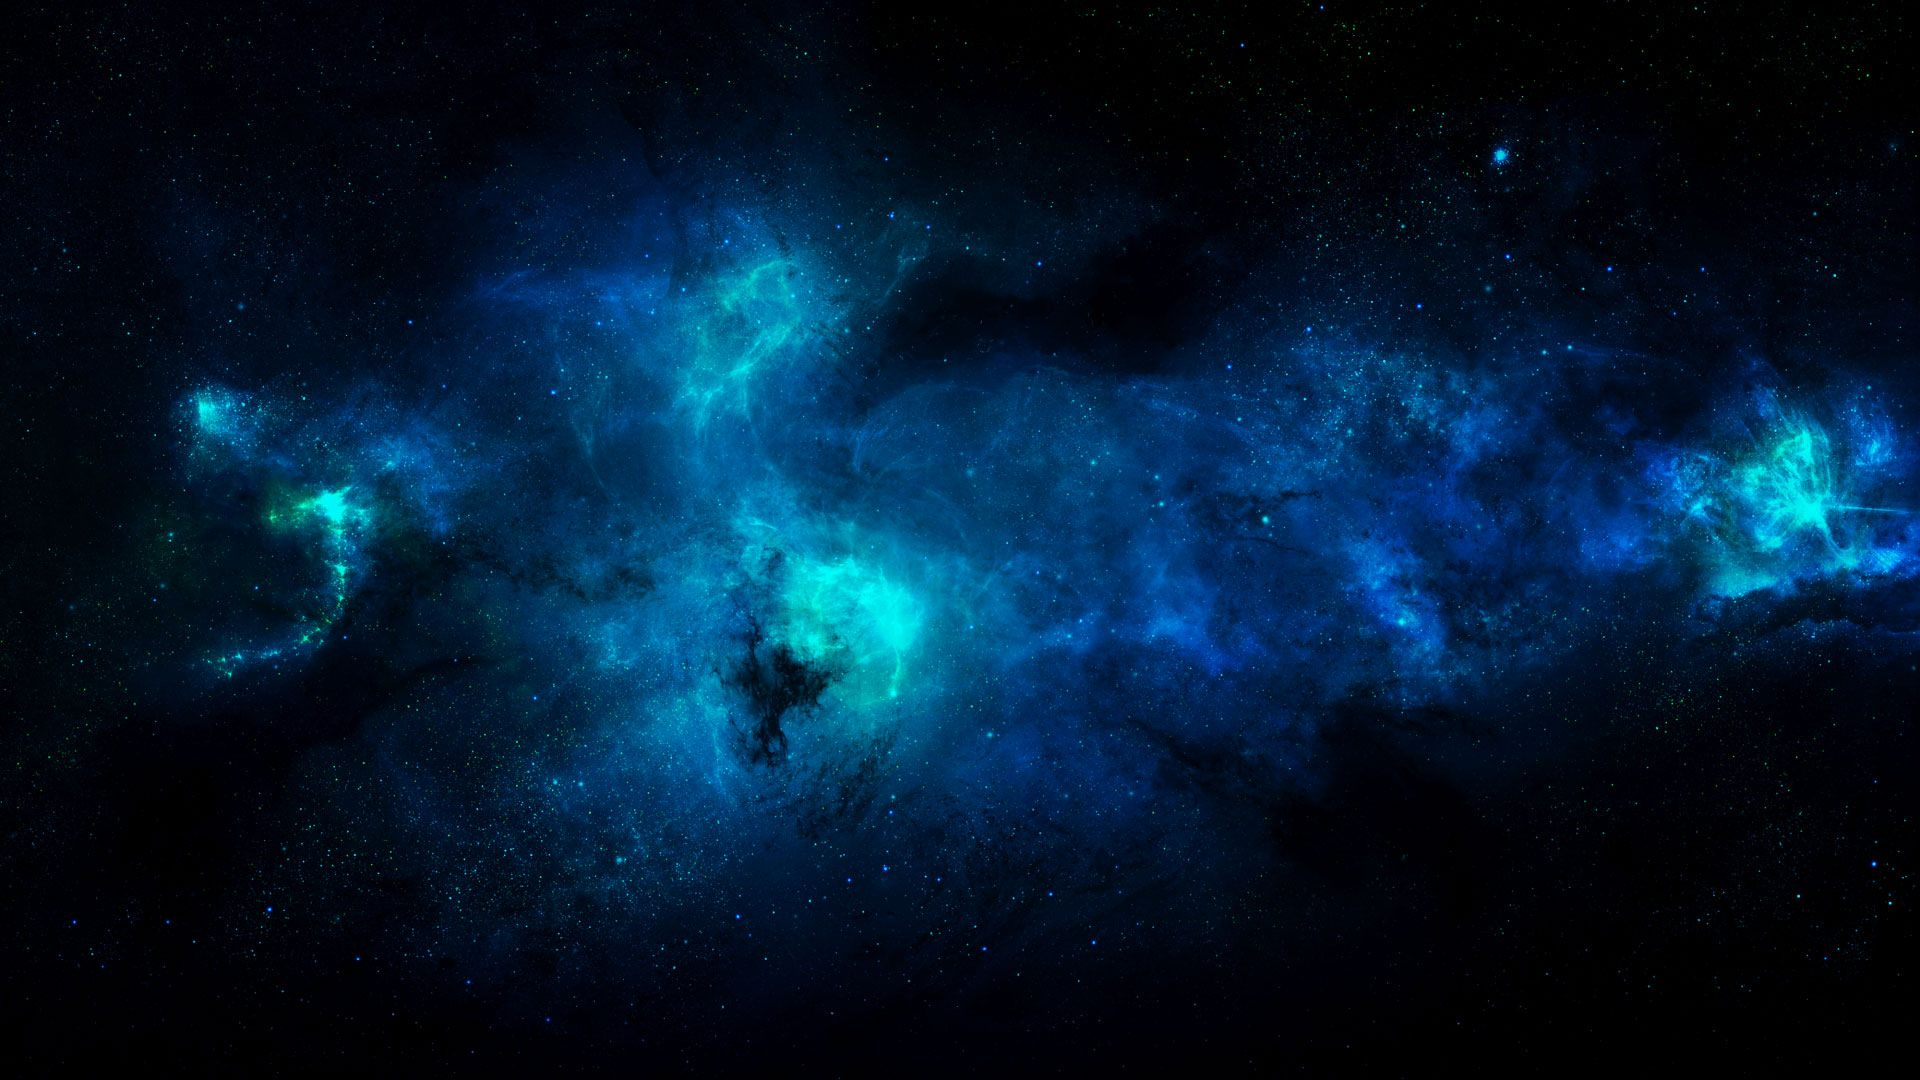 blue space nebula wallpaper | dark space | pinterest | nebula wallpaper